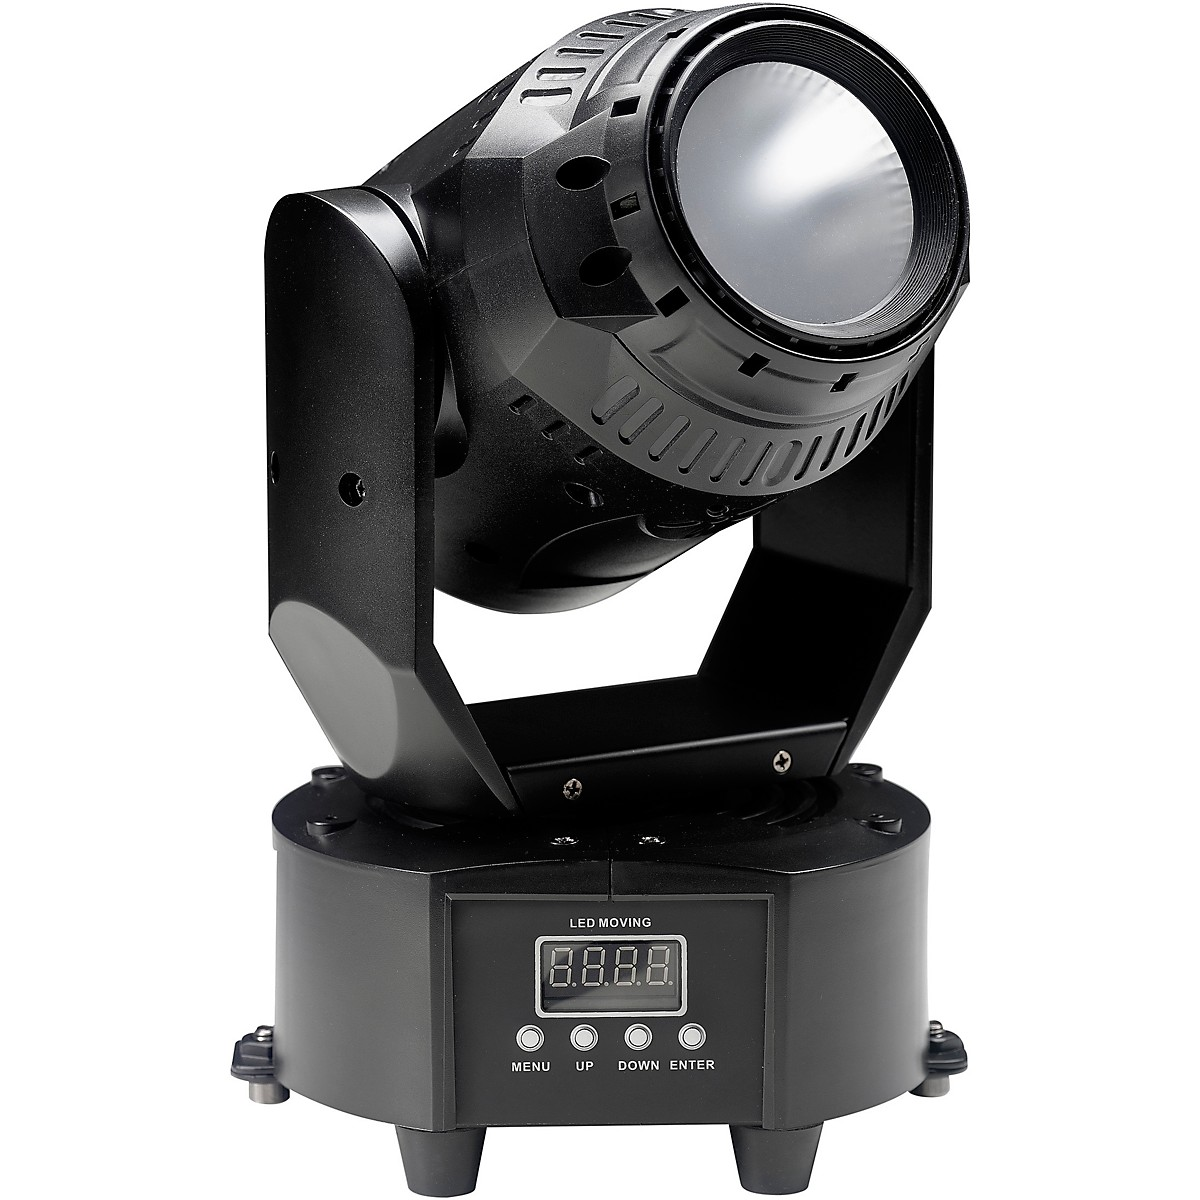 Stagg Cyclops 60 Moving Head RGB COB LED Wash Light